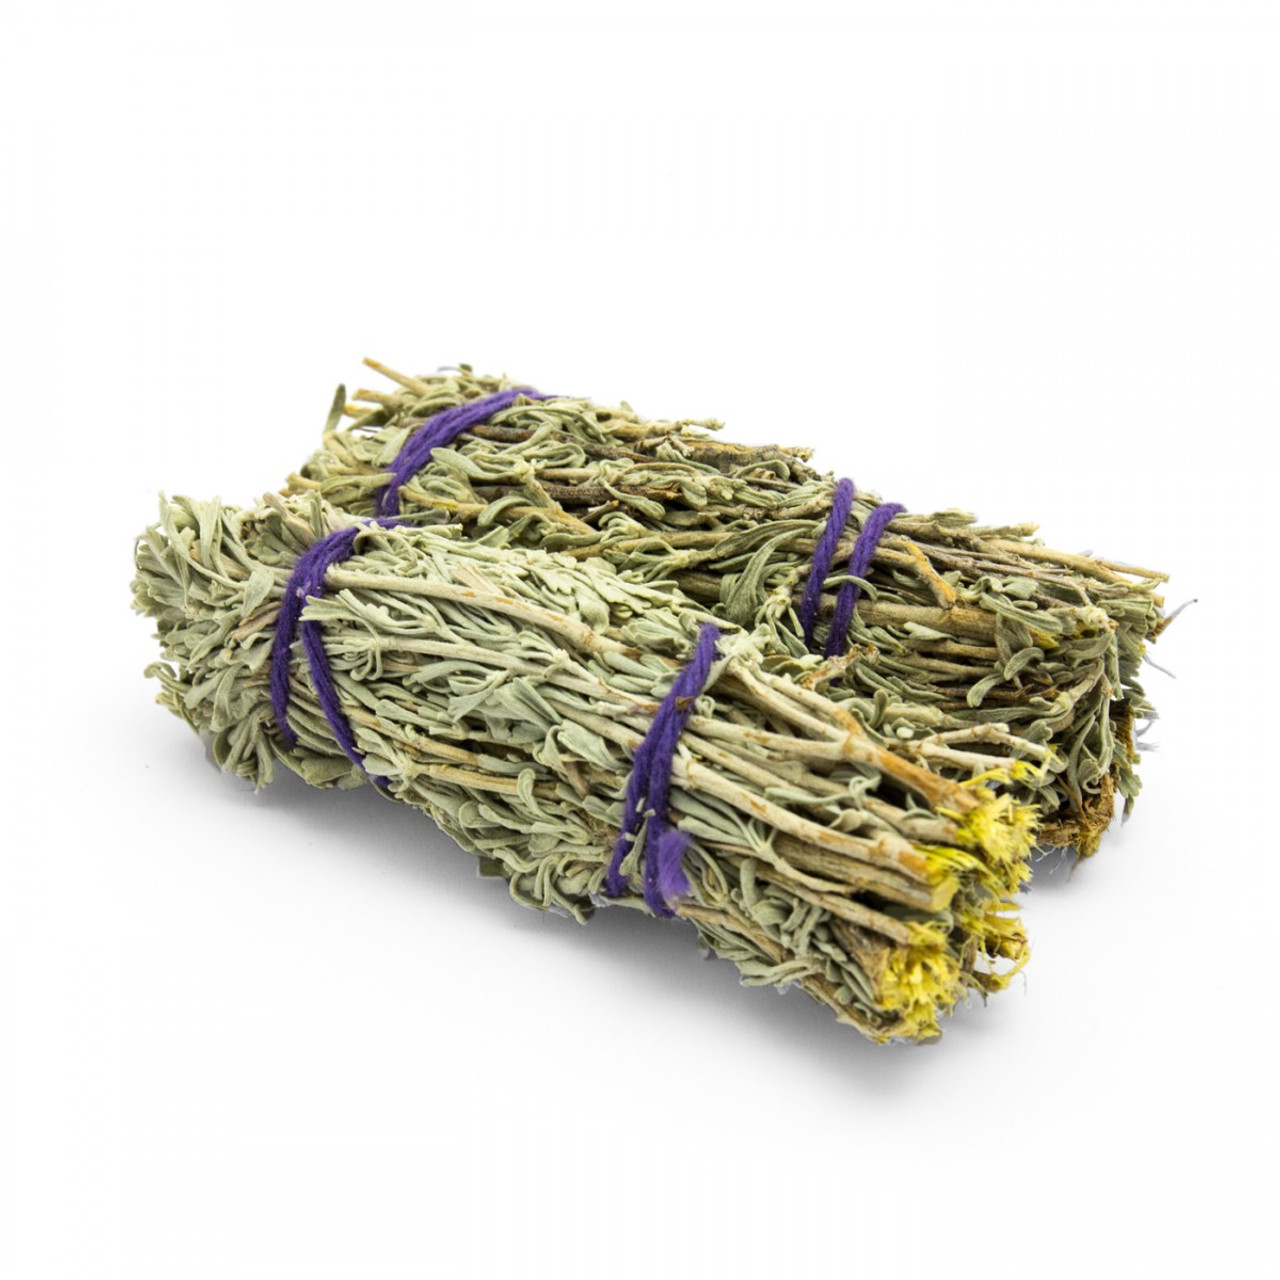 Baby Desert Sage Smudge Sticks (2 Pack)